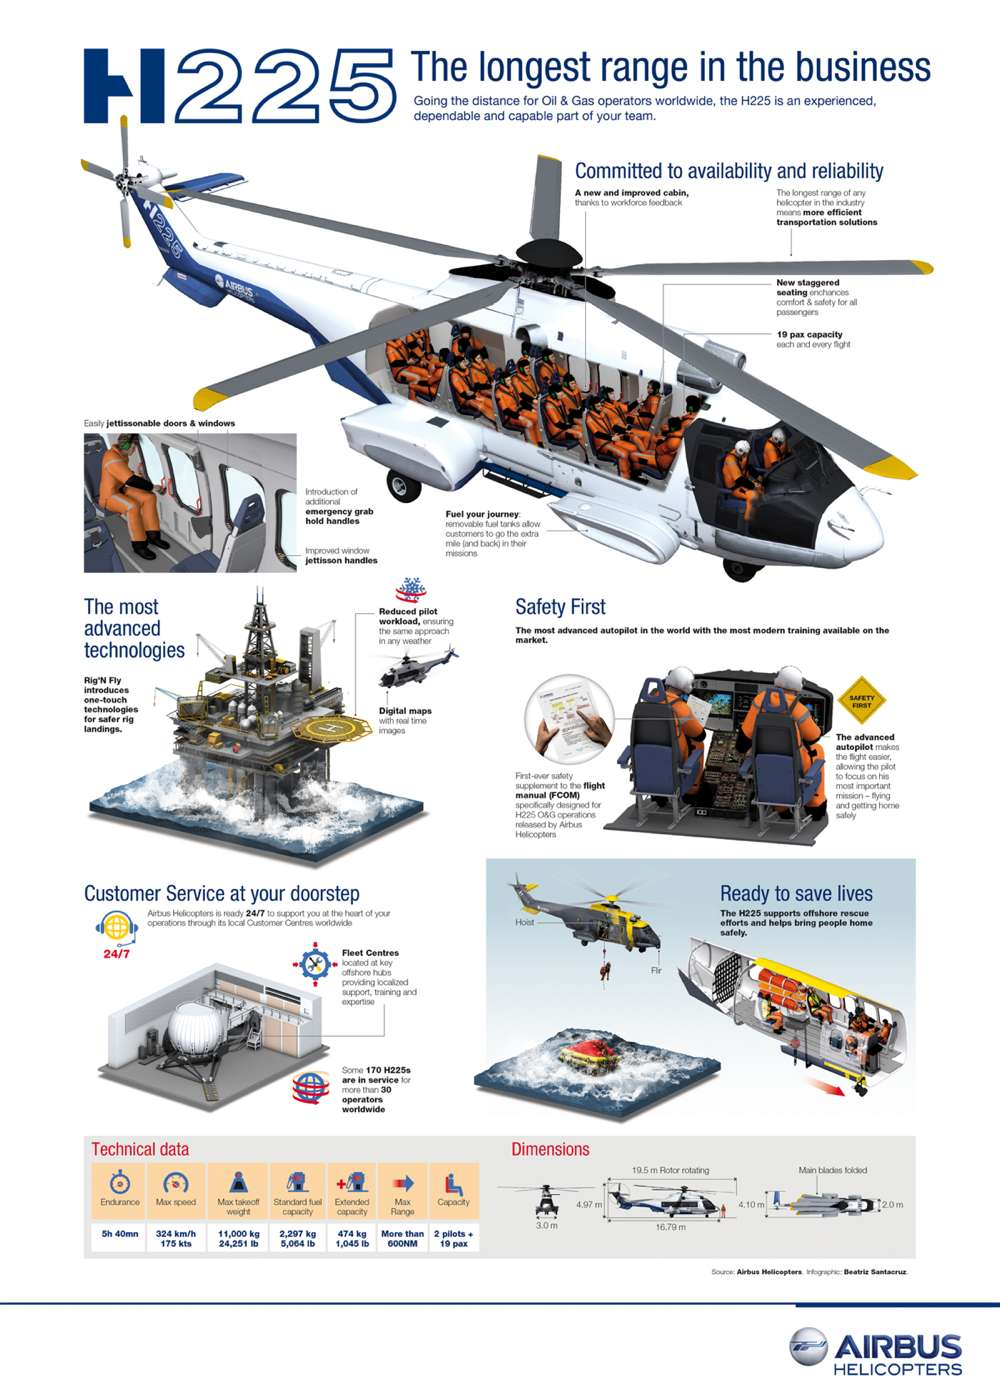 Airbus Super Puma EC225 Helicopter Infographic